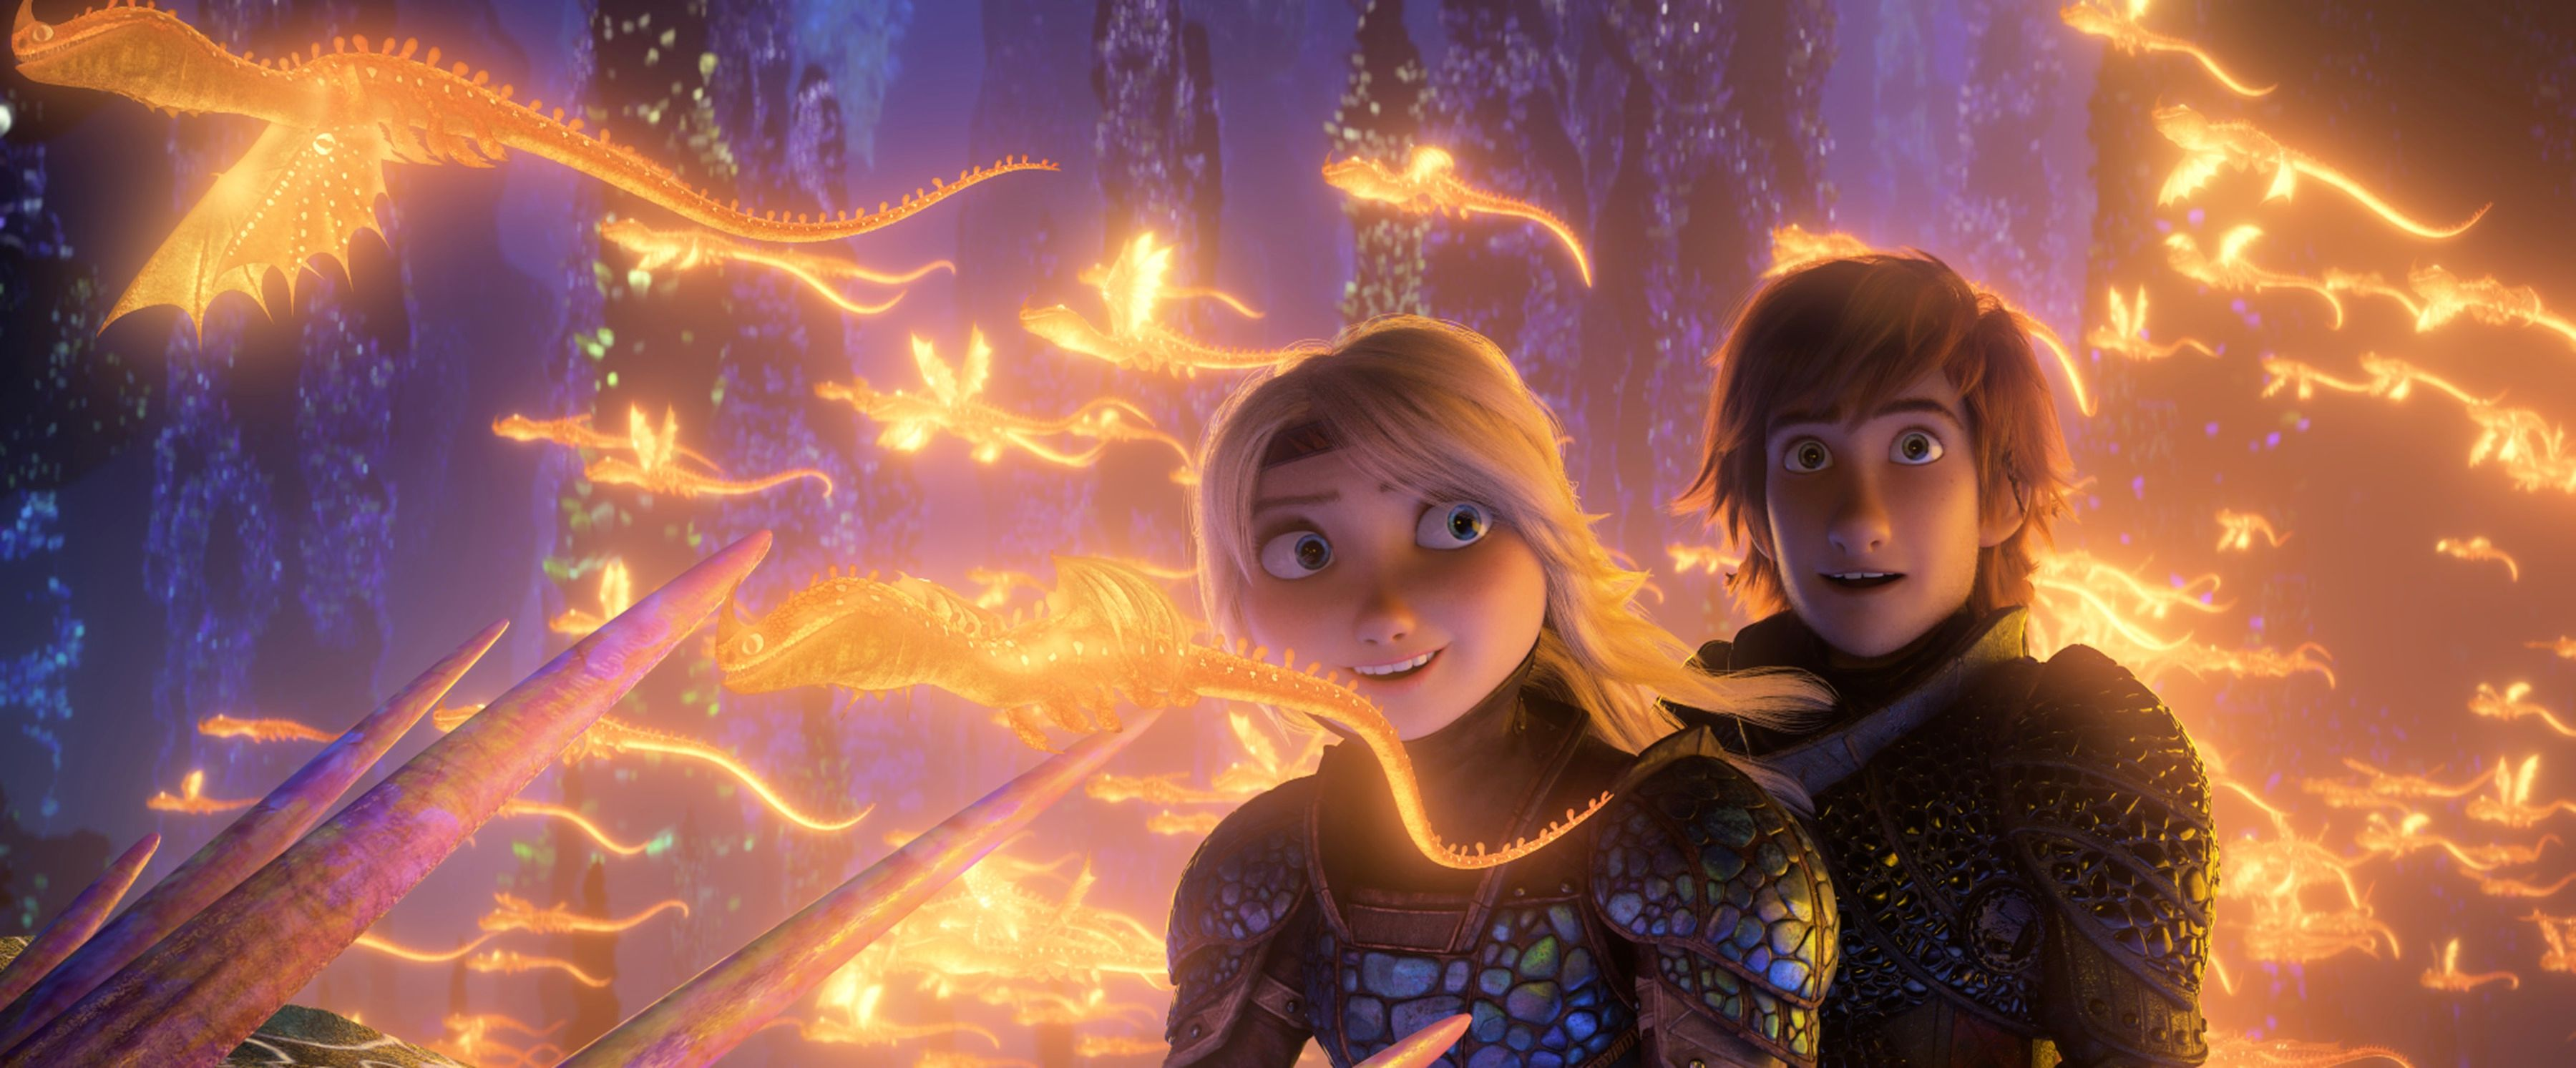 How To Train Your Dragon 3 | Teaser Trailer - photo#46